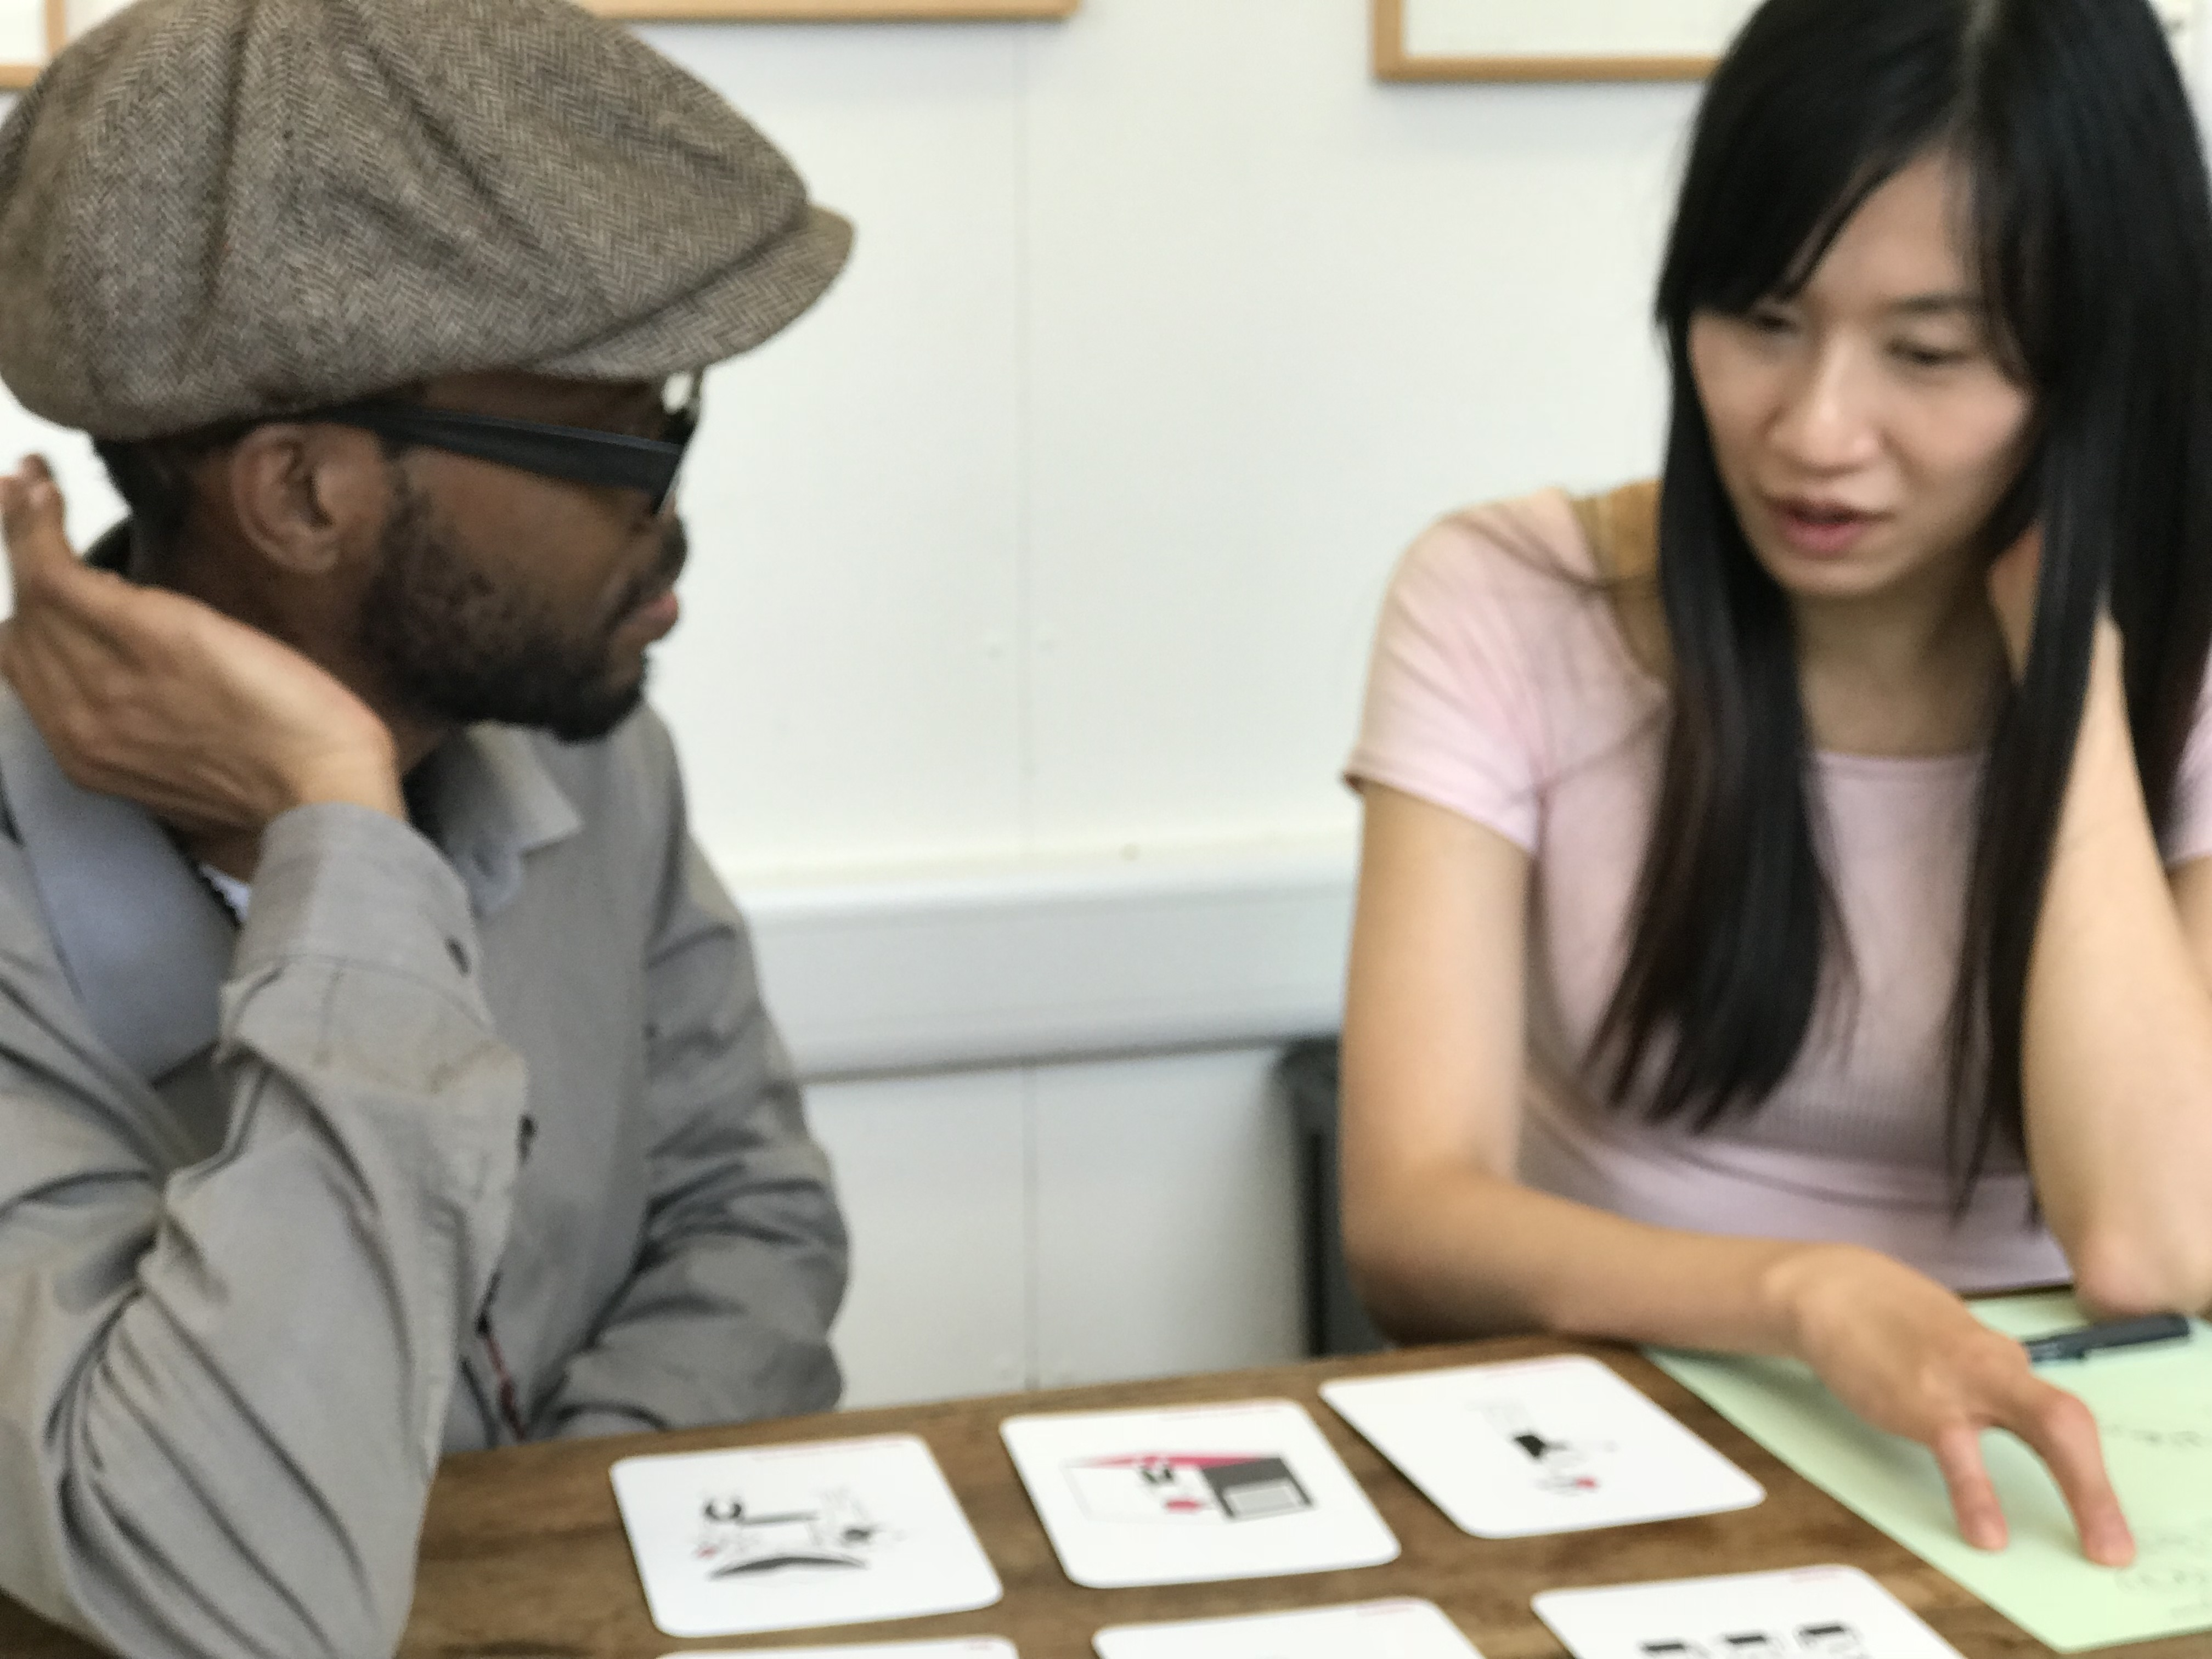 Close up of two people sitting at a table talking. In front of them they have a few cards laid out and a piece of paper.